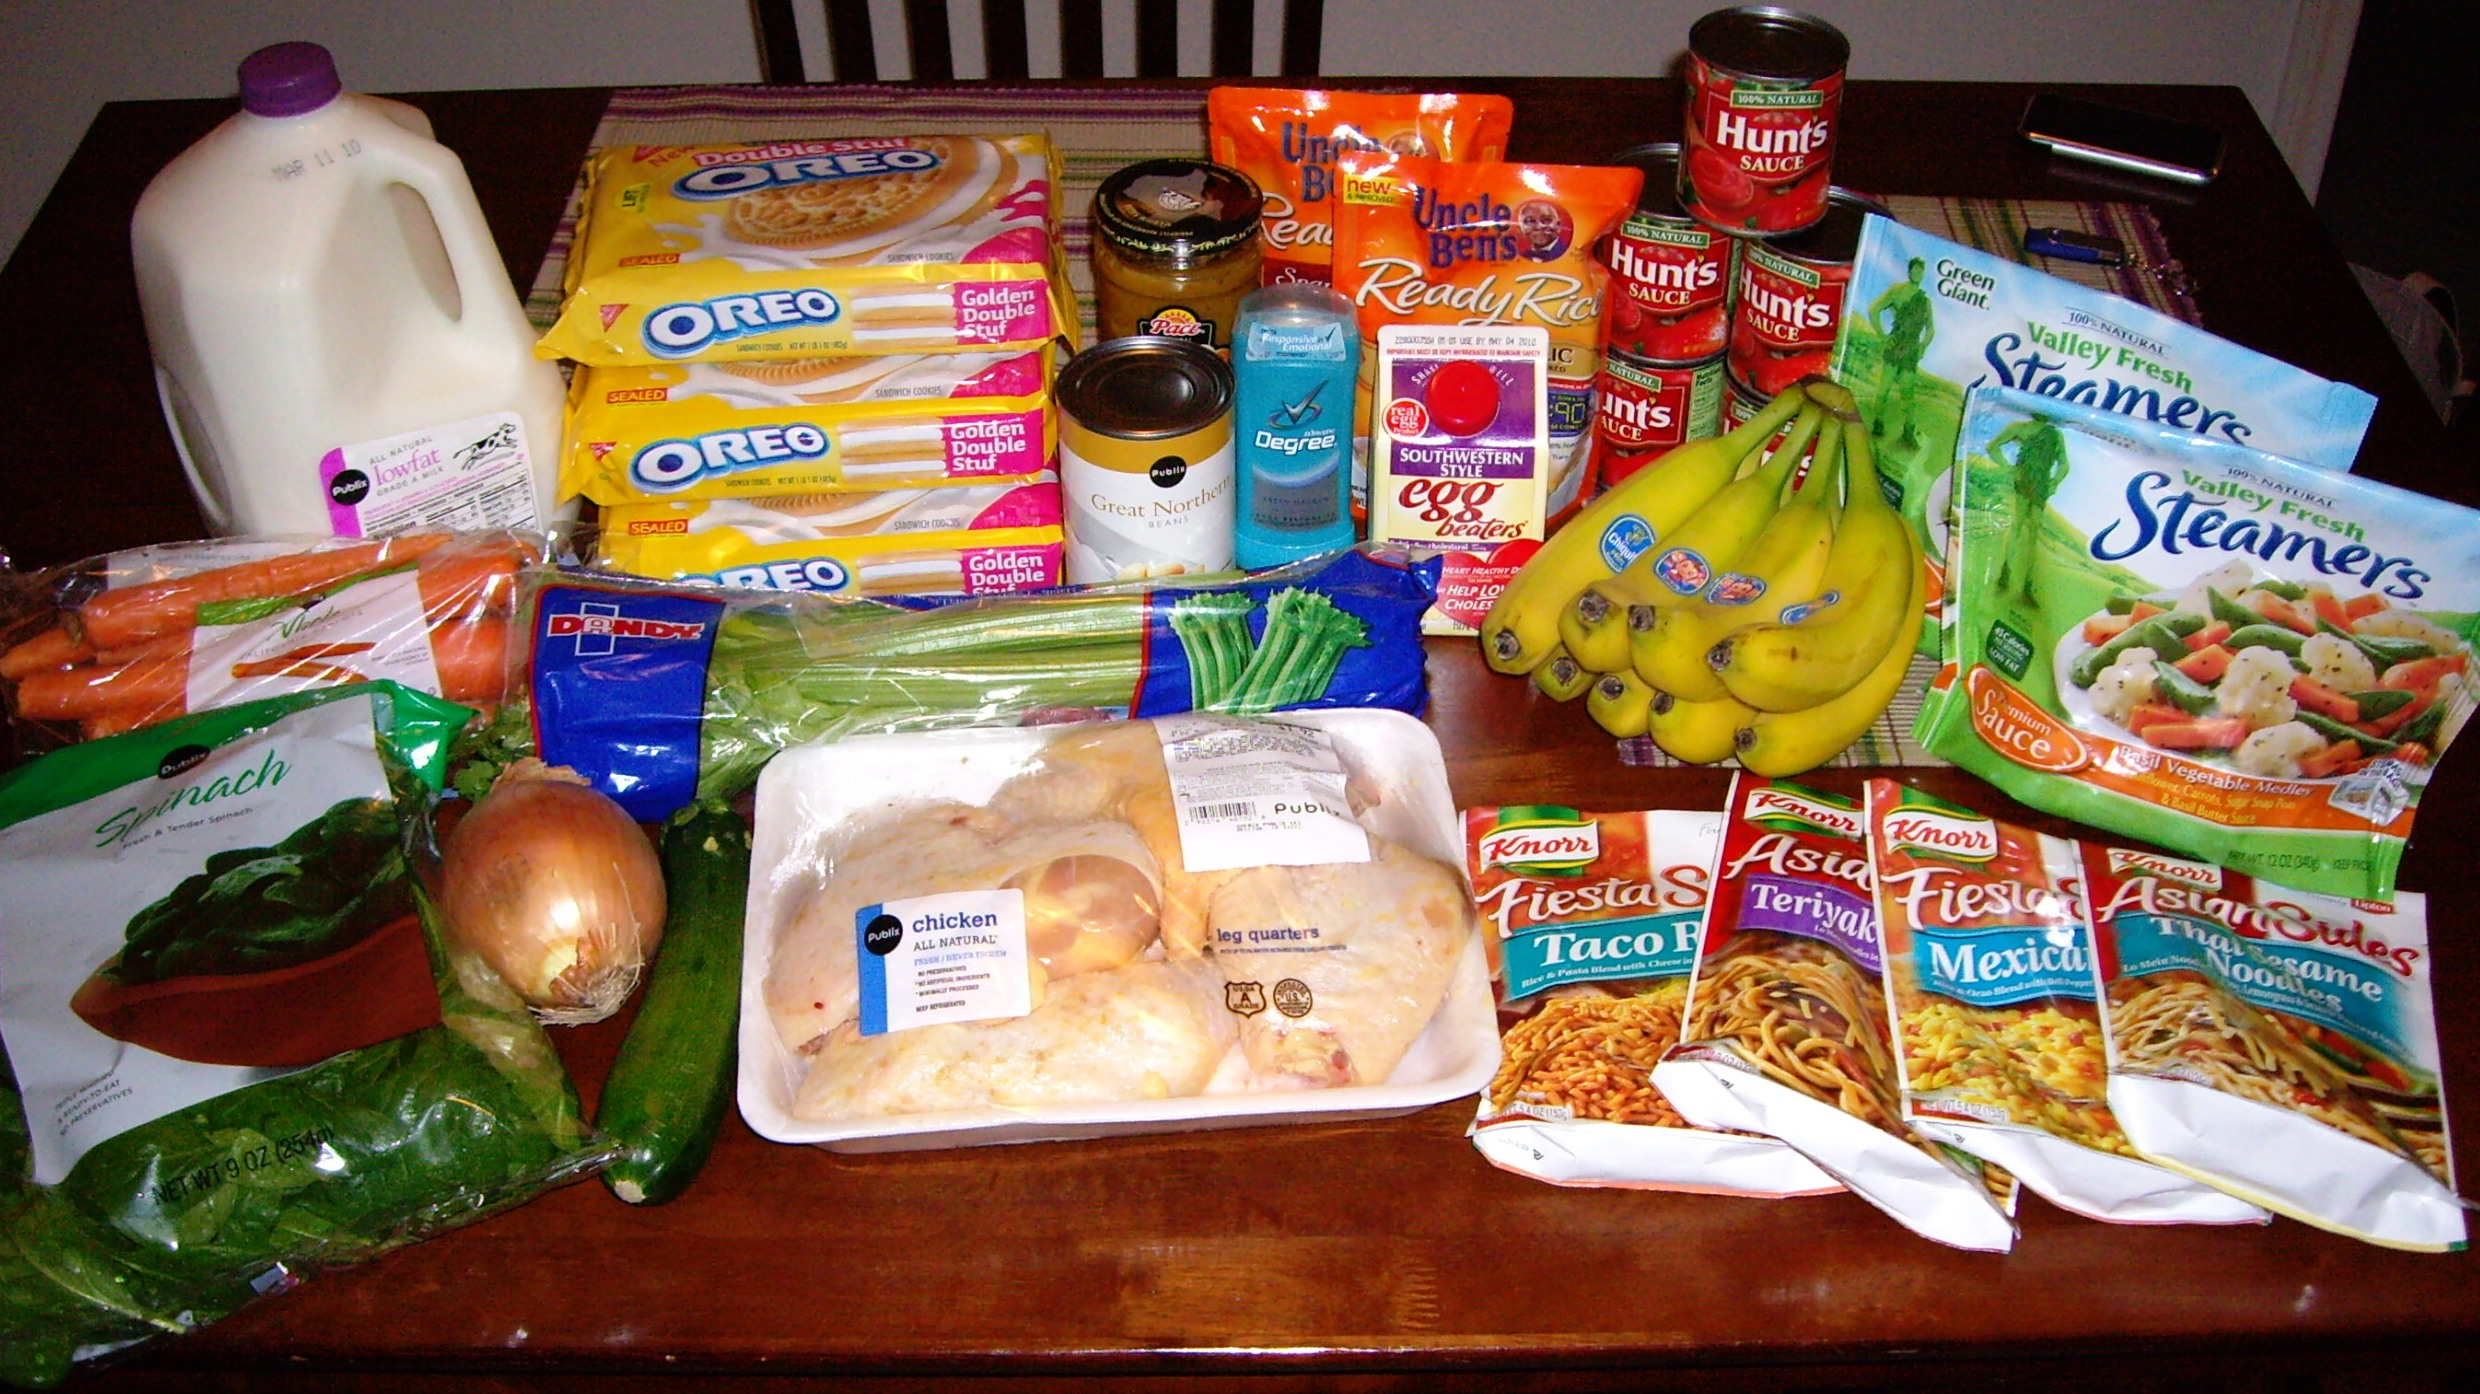 Shopping summary miss q to the rescue page 2 for Fish sauce kroger